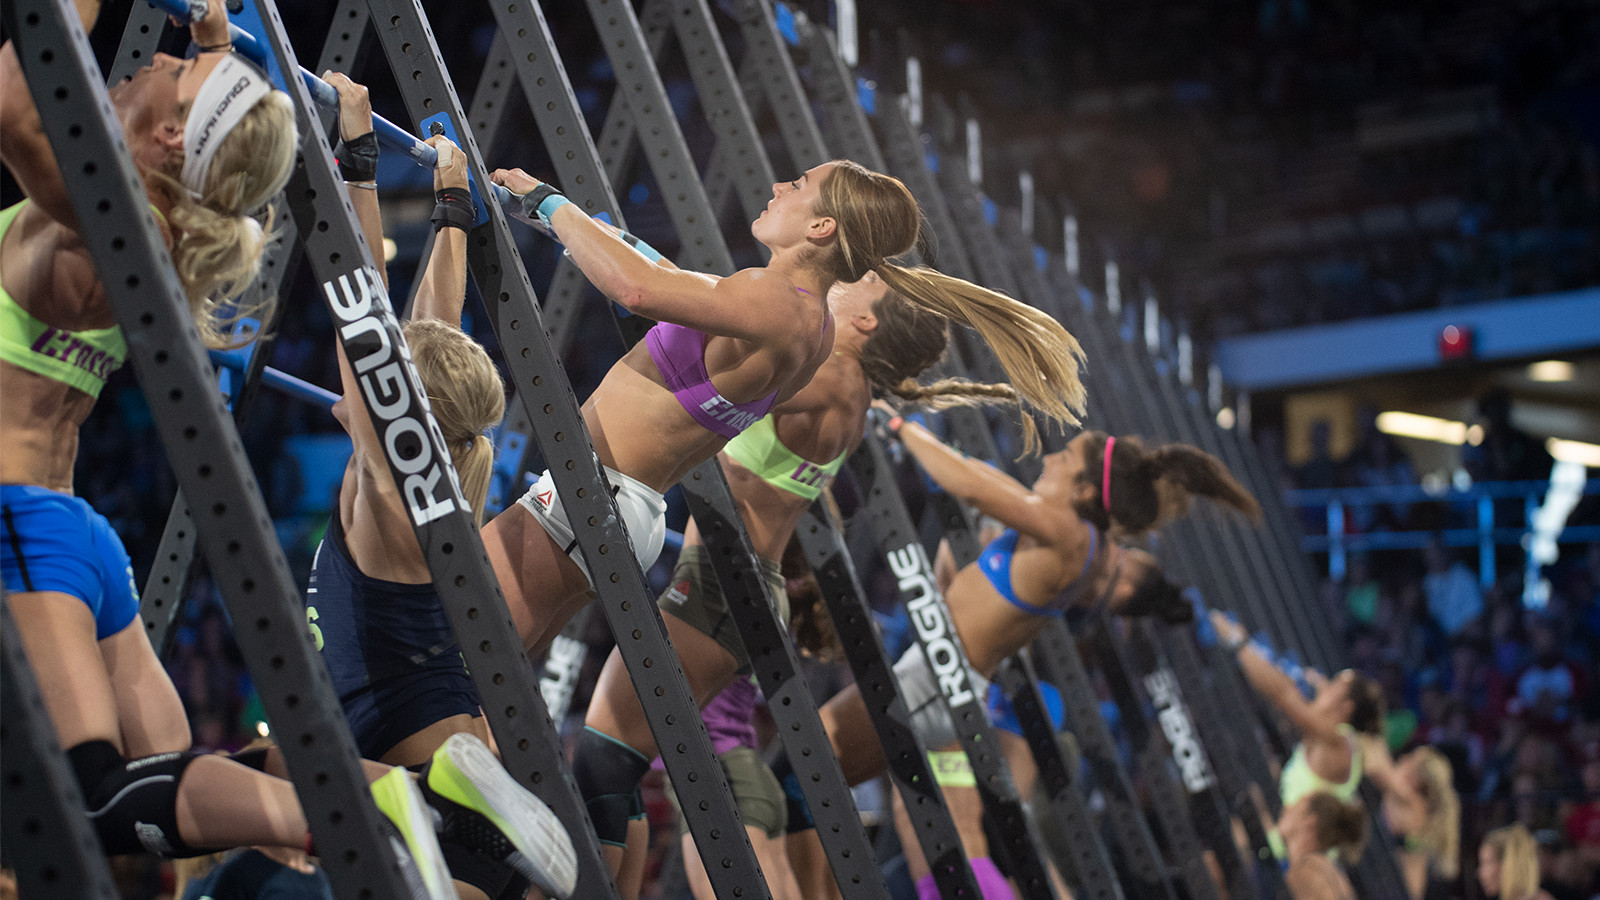 Speaking of physical exhaustion… The CrossFit Games Open just started! (Image courtesy of CrossFit)